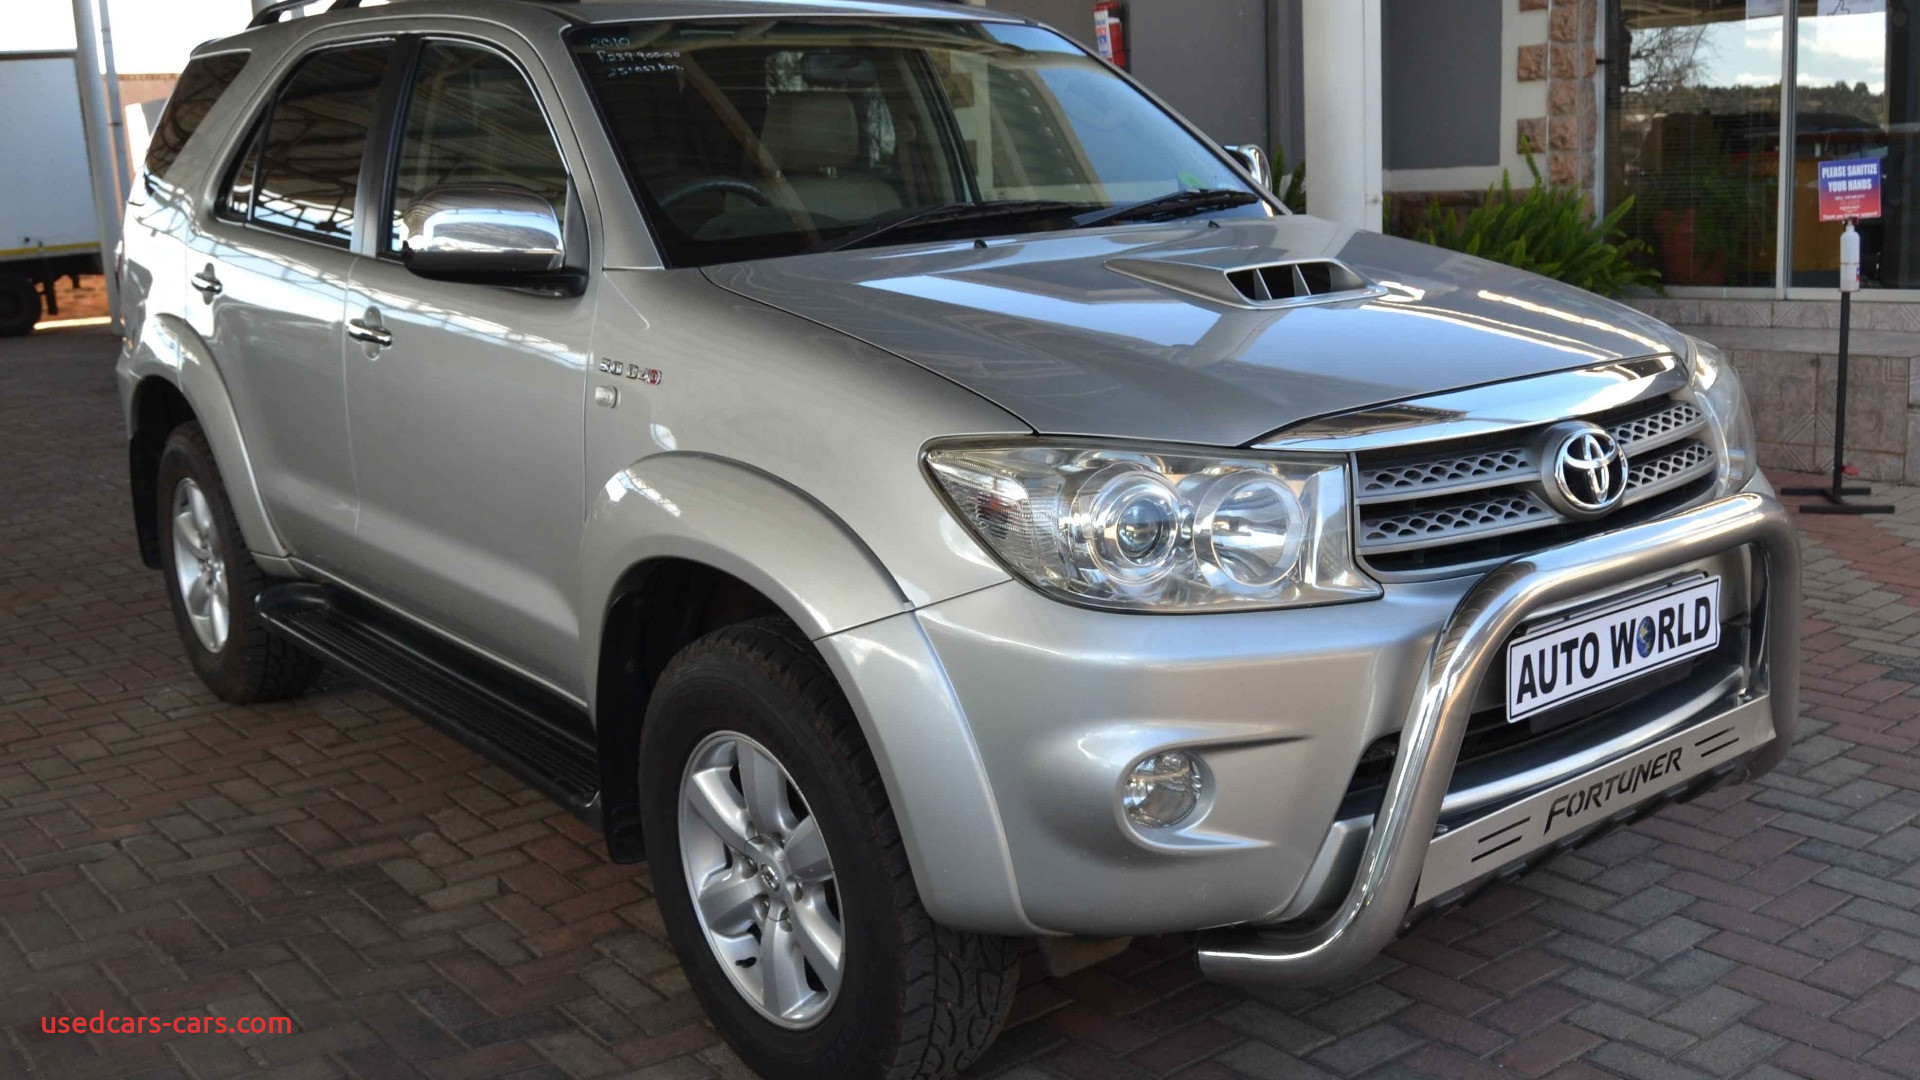 Used Cars for Sale 2010 Inspirational toyota fortuner for Sale In north West